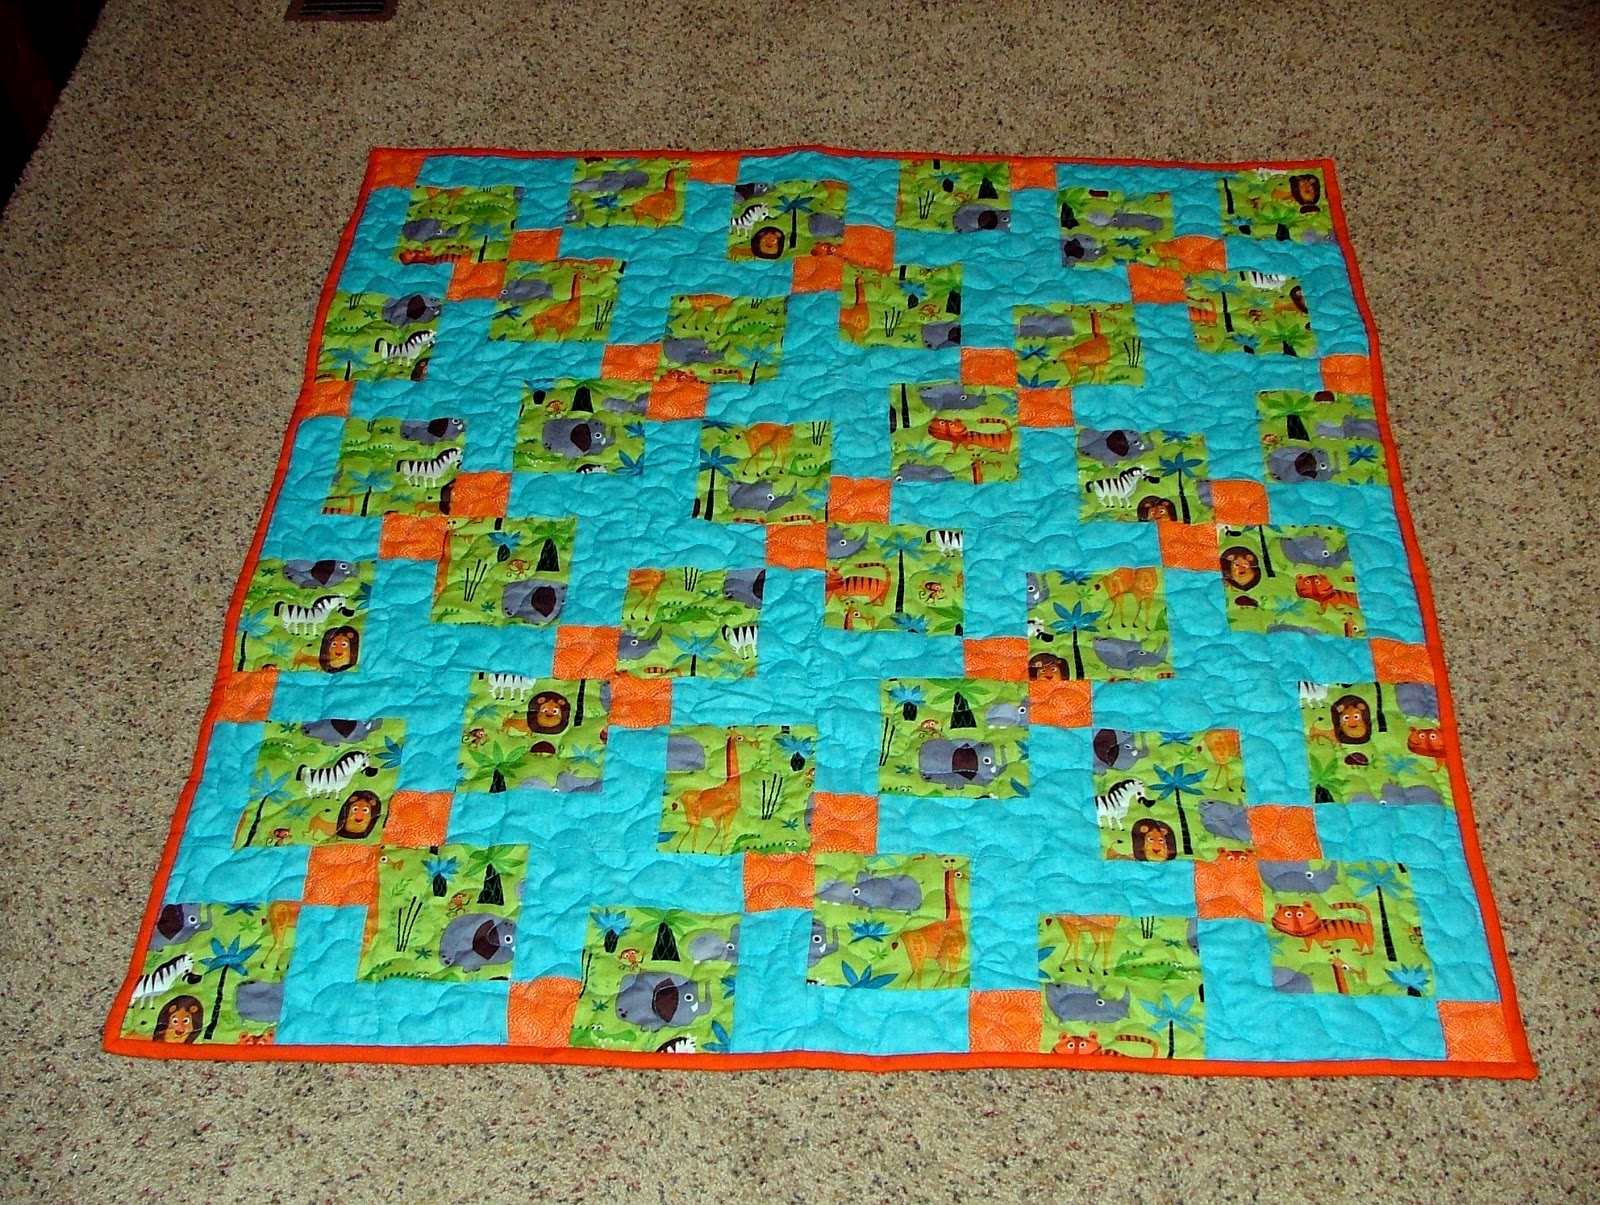 Free Quilt Patterns And Tutorials Disappearing 9 Patch